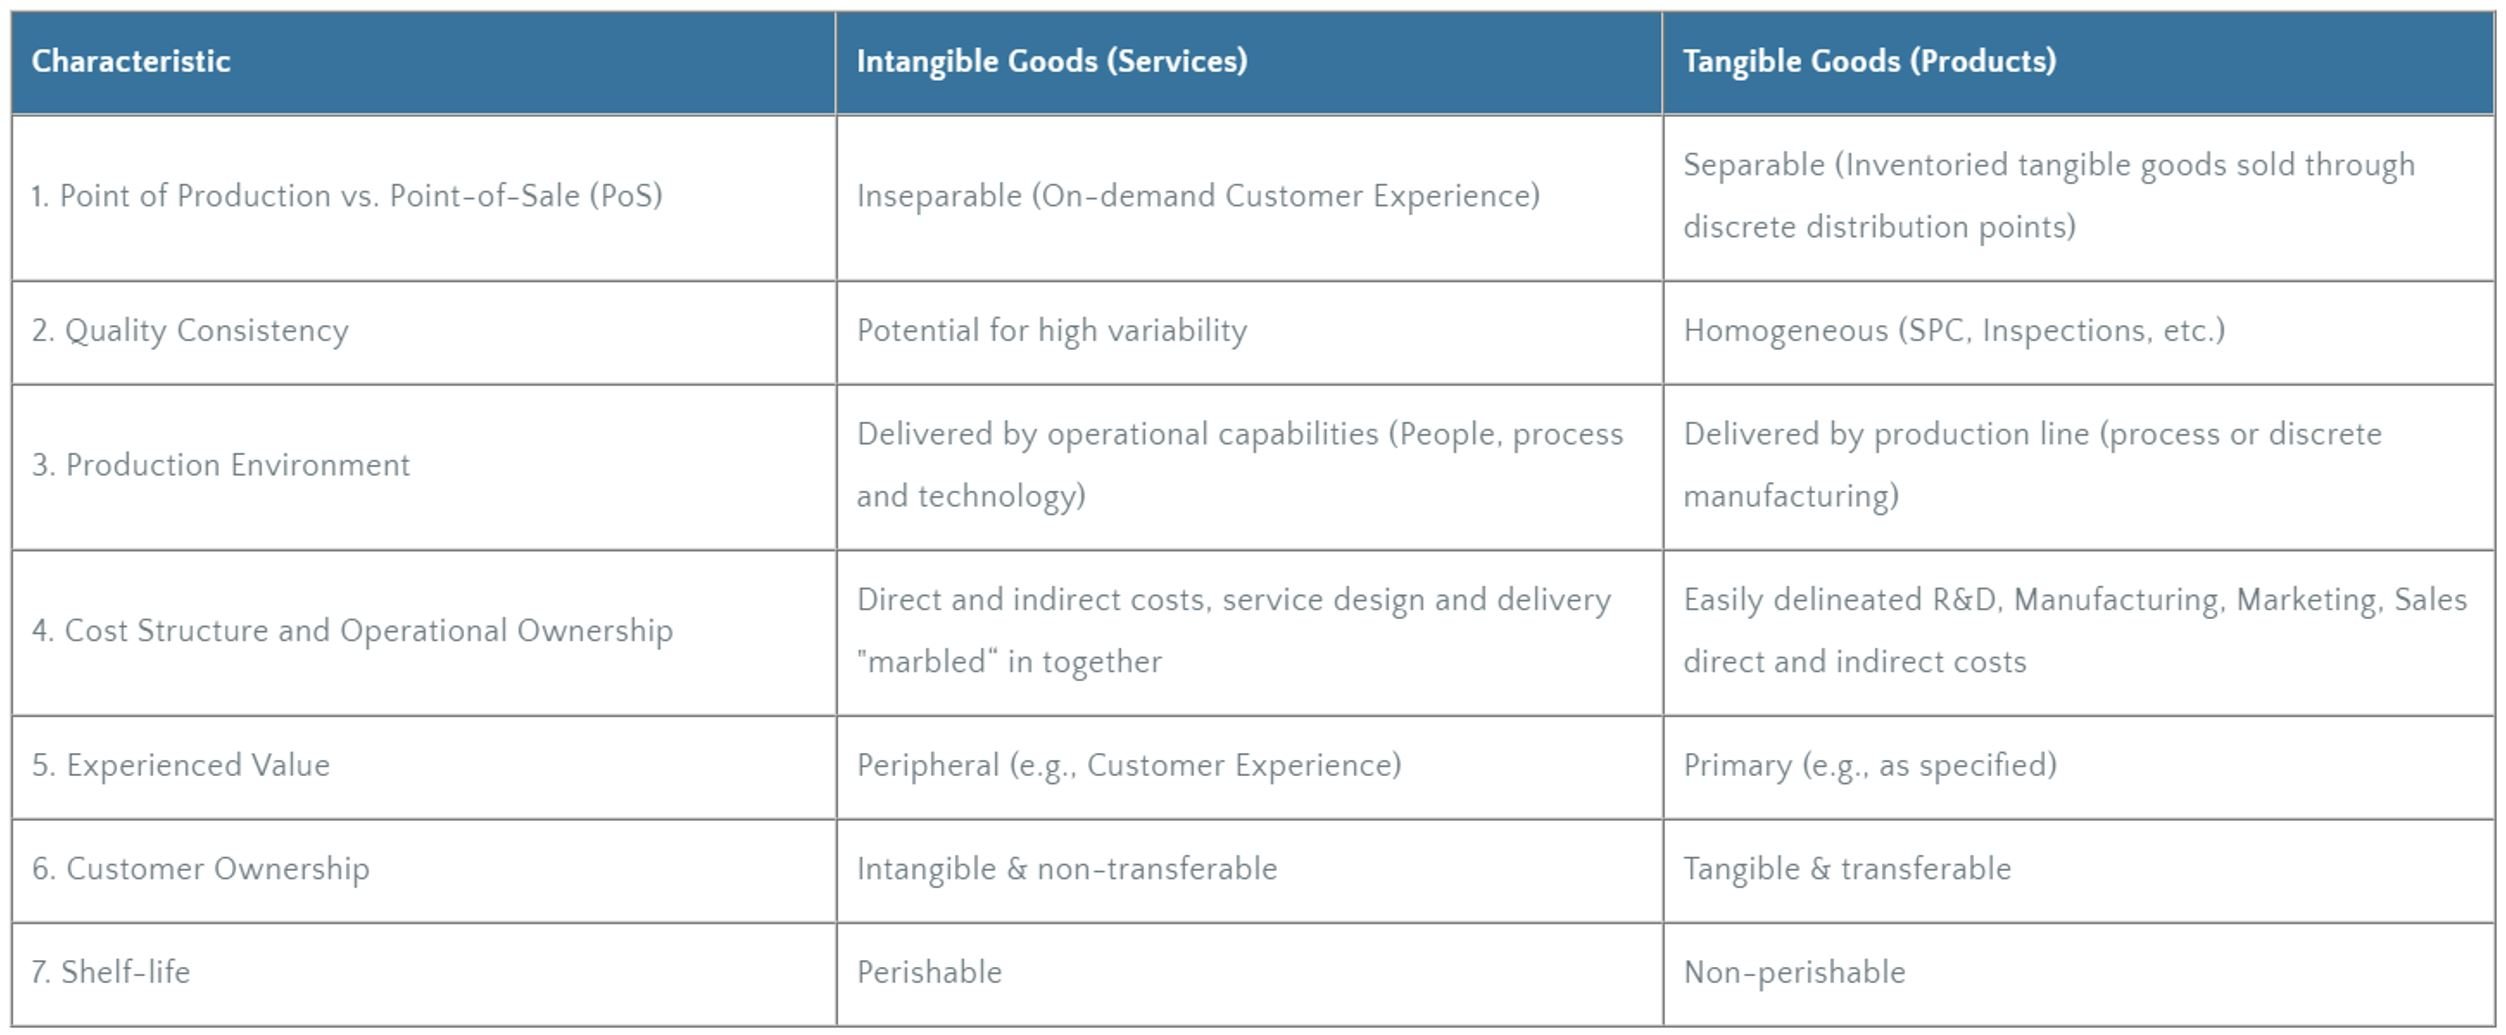 Product vs. Services